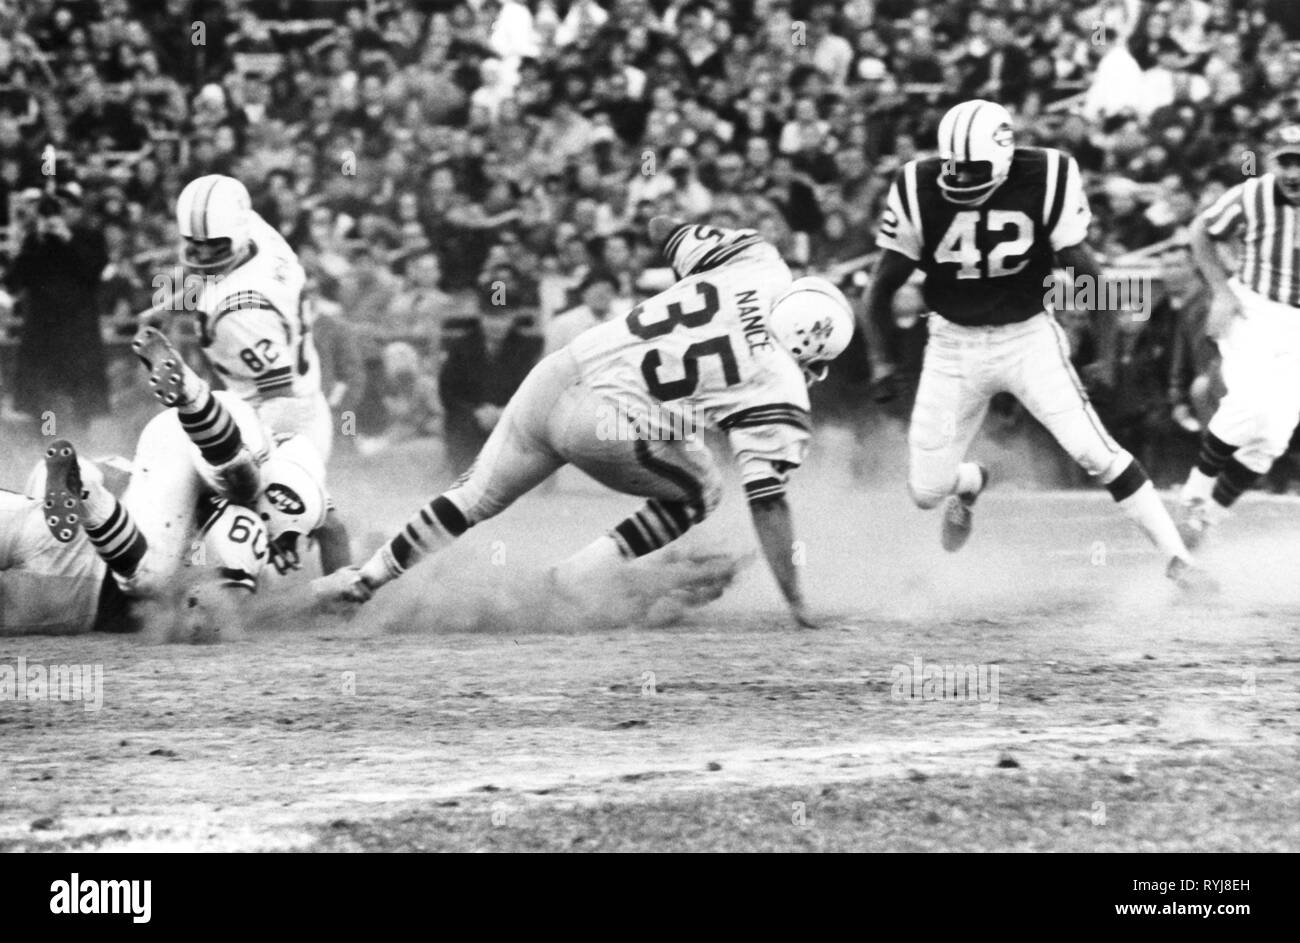 sports, American Football, game Boston Partiots versus New York Jets, fullback Jim Nance (Boston during an attack, circa 1970, Additional-Rights-Clearance-Info-Not-Available - Stock Image